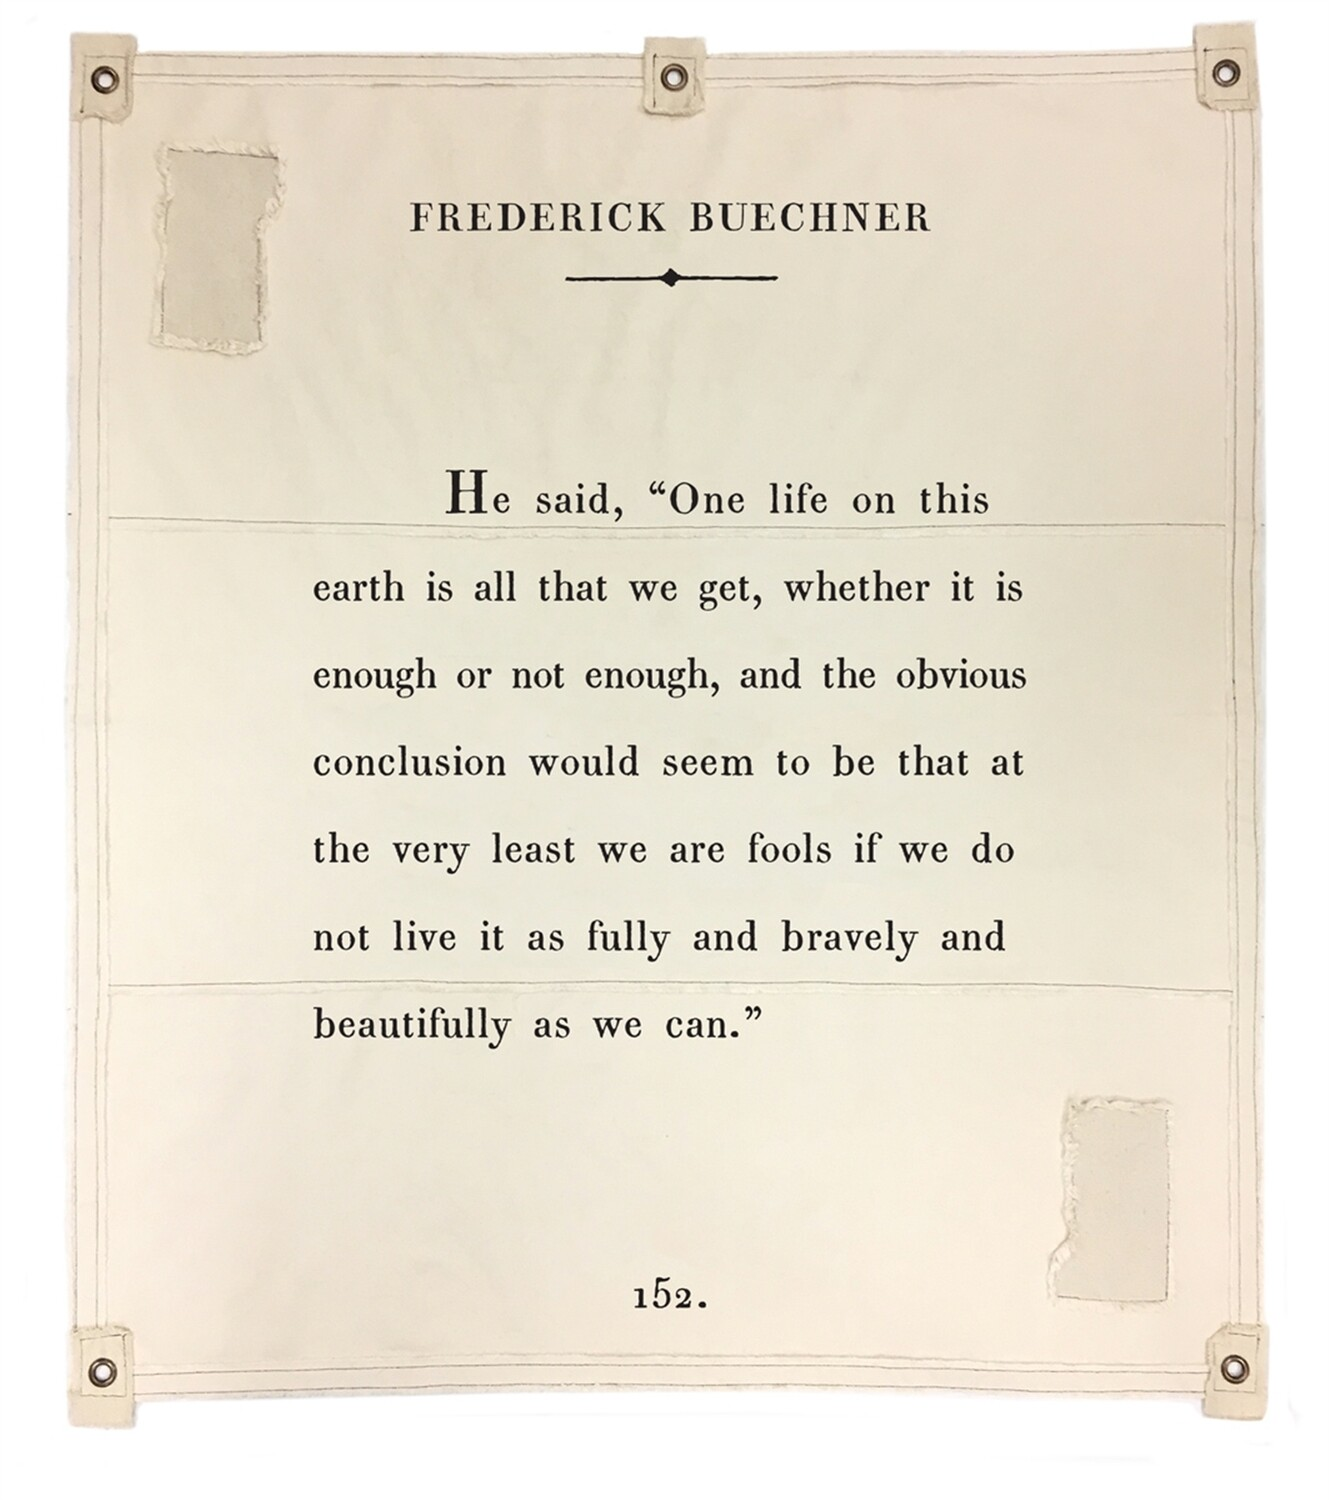 BOOK PAGE TAPESTRY TARP ART - Frederick Buechner